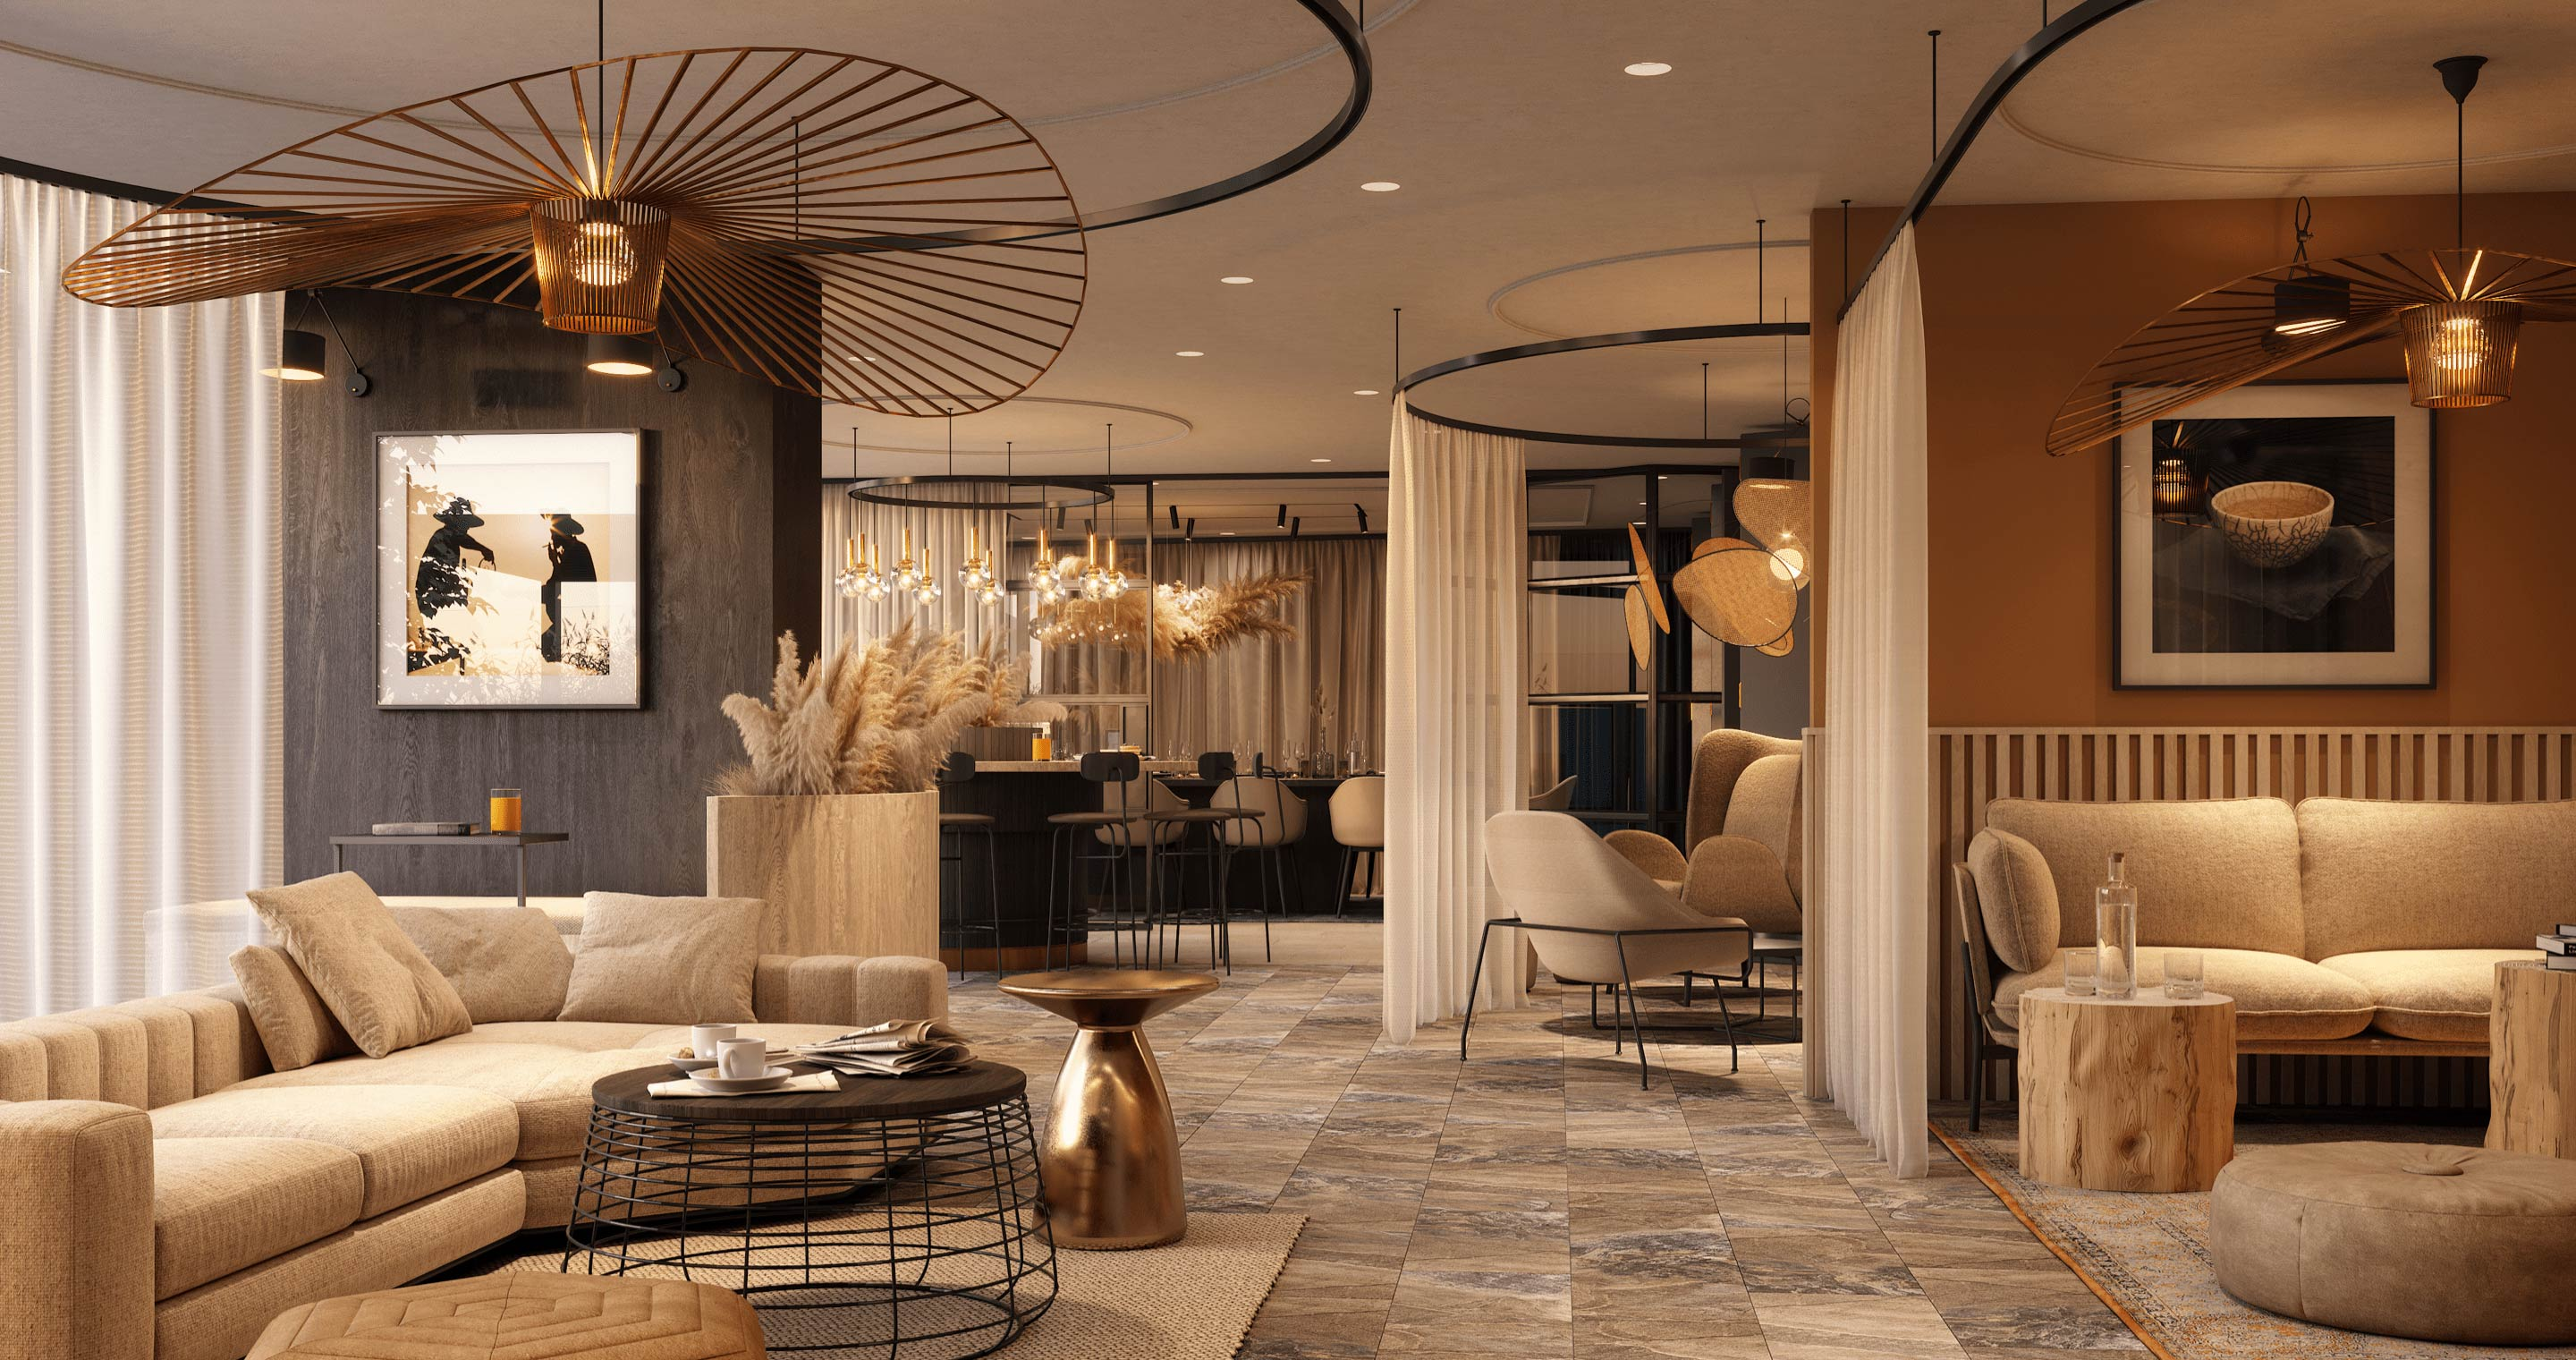 An interior CGI rendering of the residents' lounge at Deansgate Square